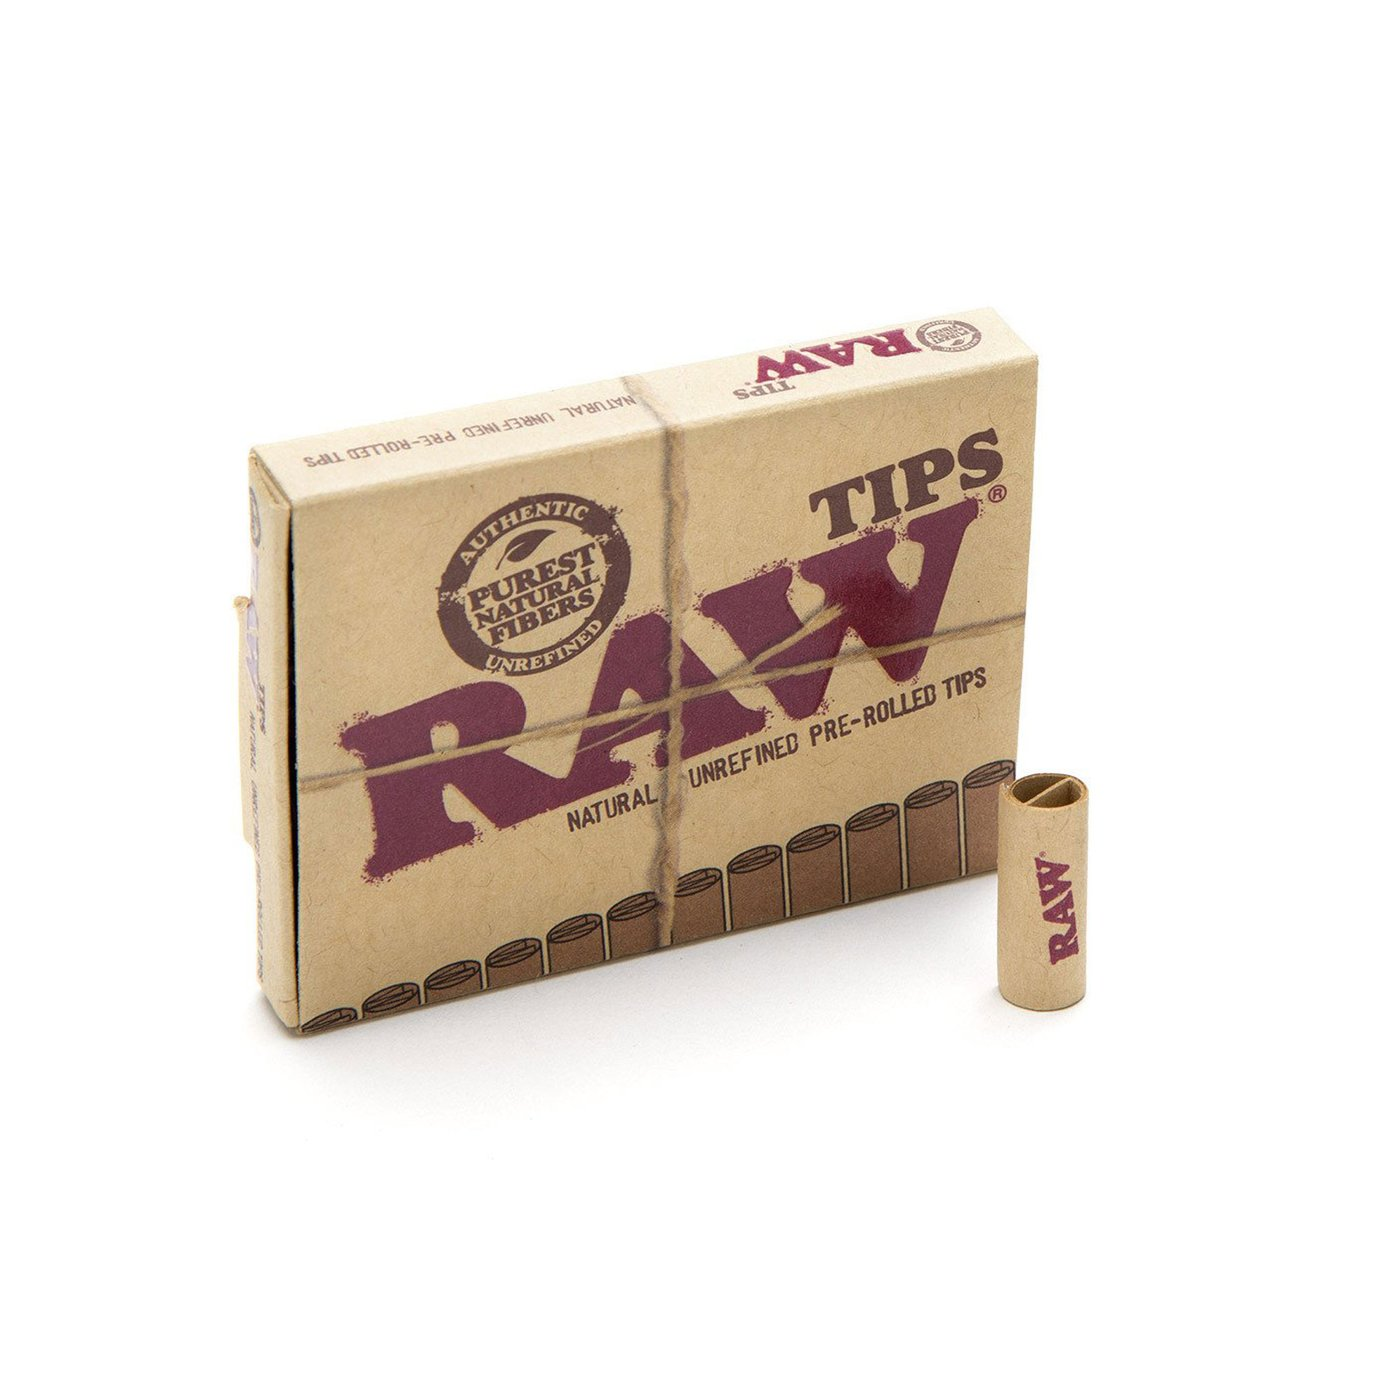 Raw Unbleached Pre-Rolled Tips